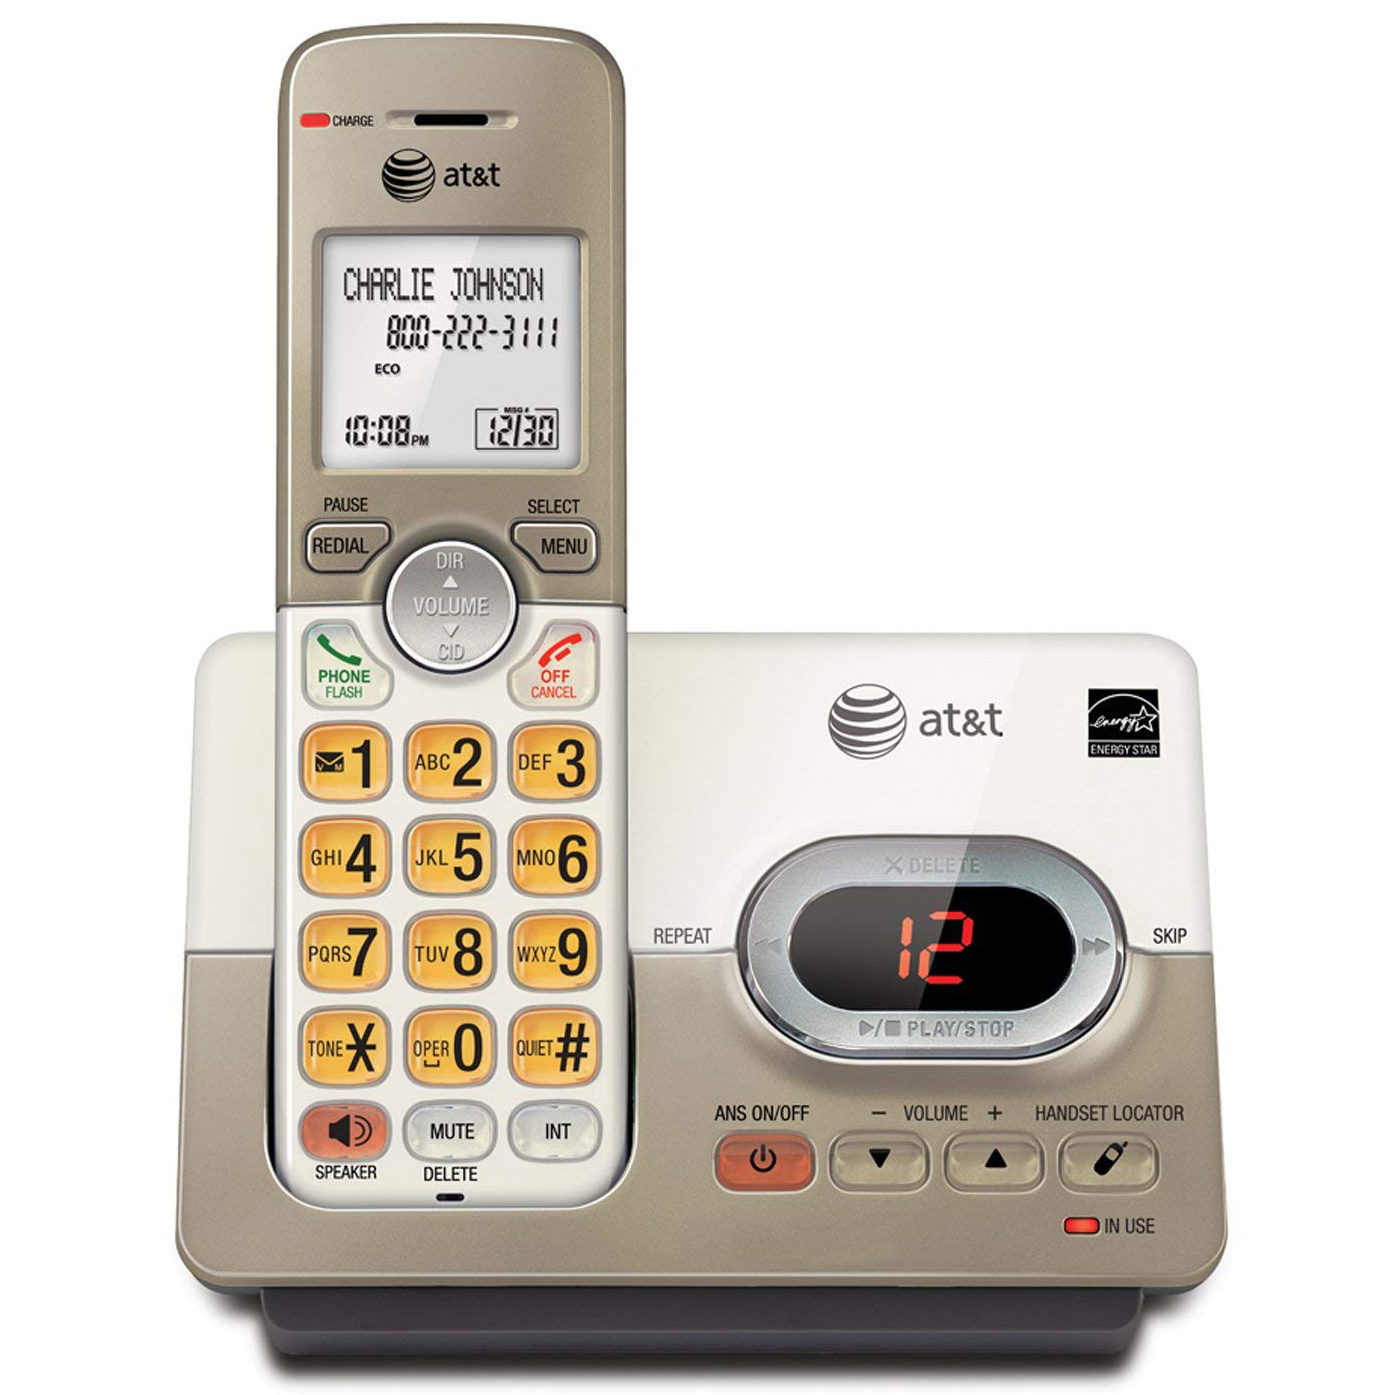 Choosing the Best Cordless Phone | Cordless Phone Reviews ...